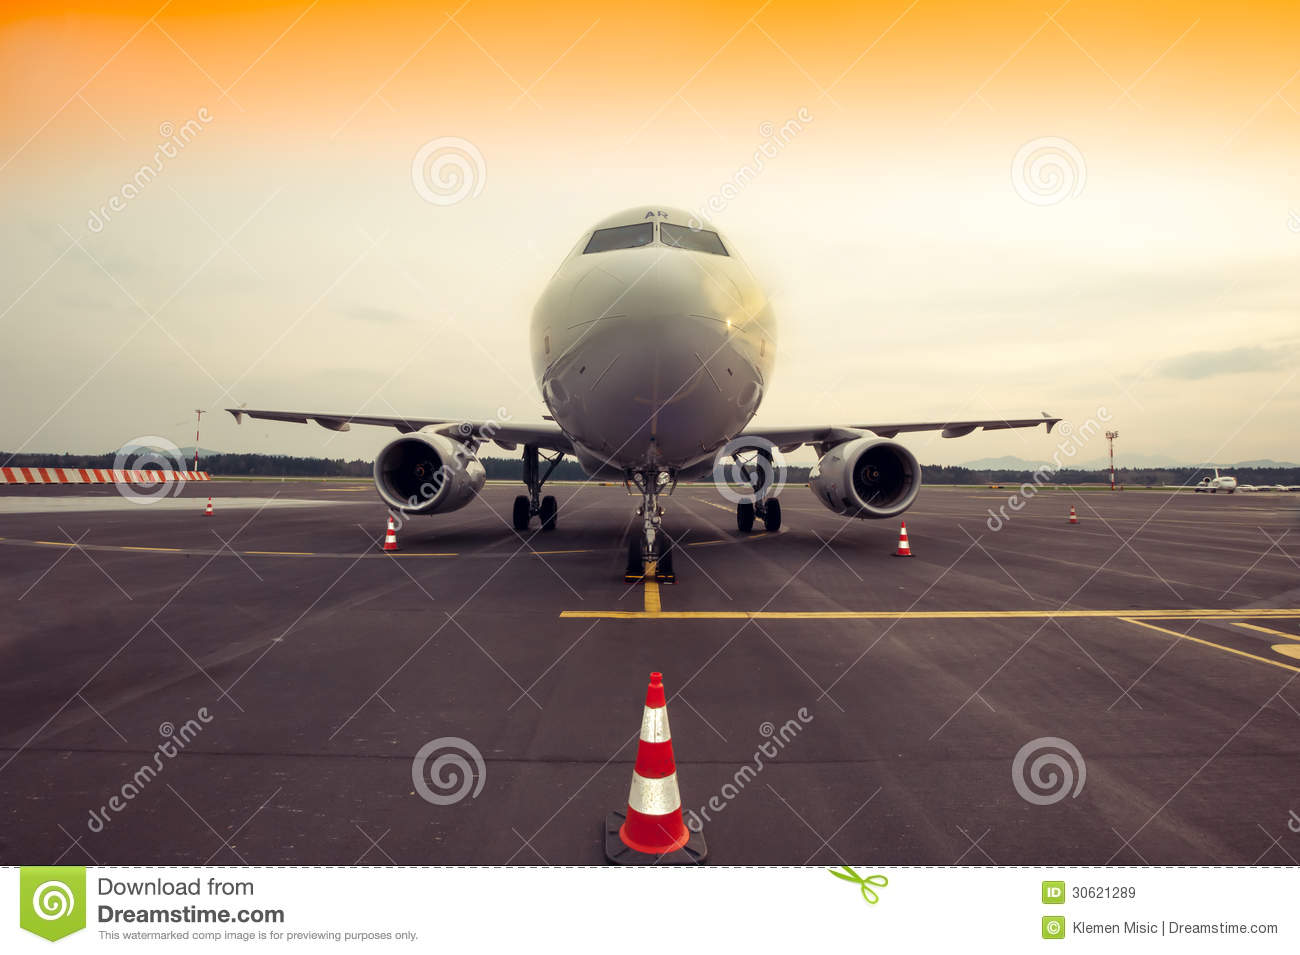 Commercial Airplane Parking At The Airport With Traffic